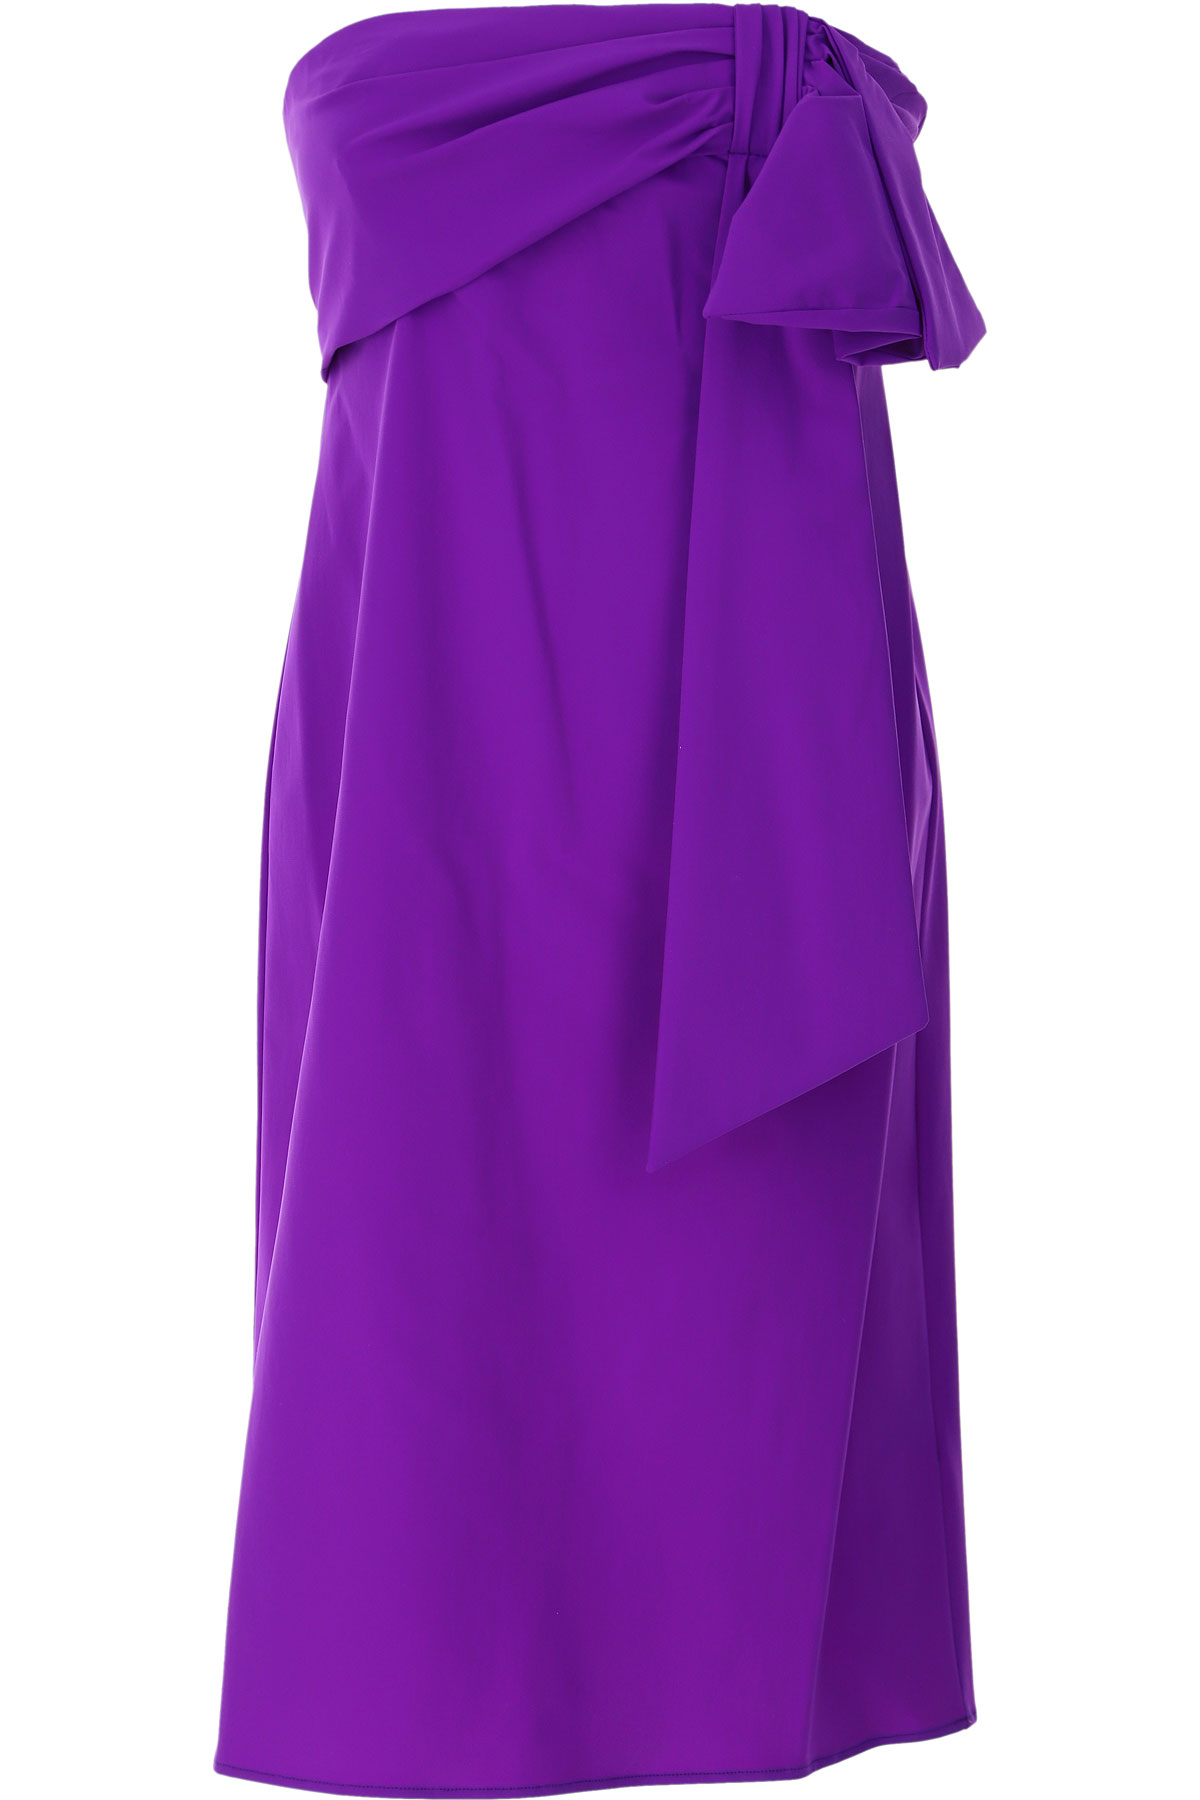 Dondup Dress for Women, Evening Cocktail Party On Sale, Violet, polyamide, 2019, 4 6